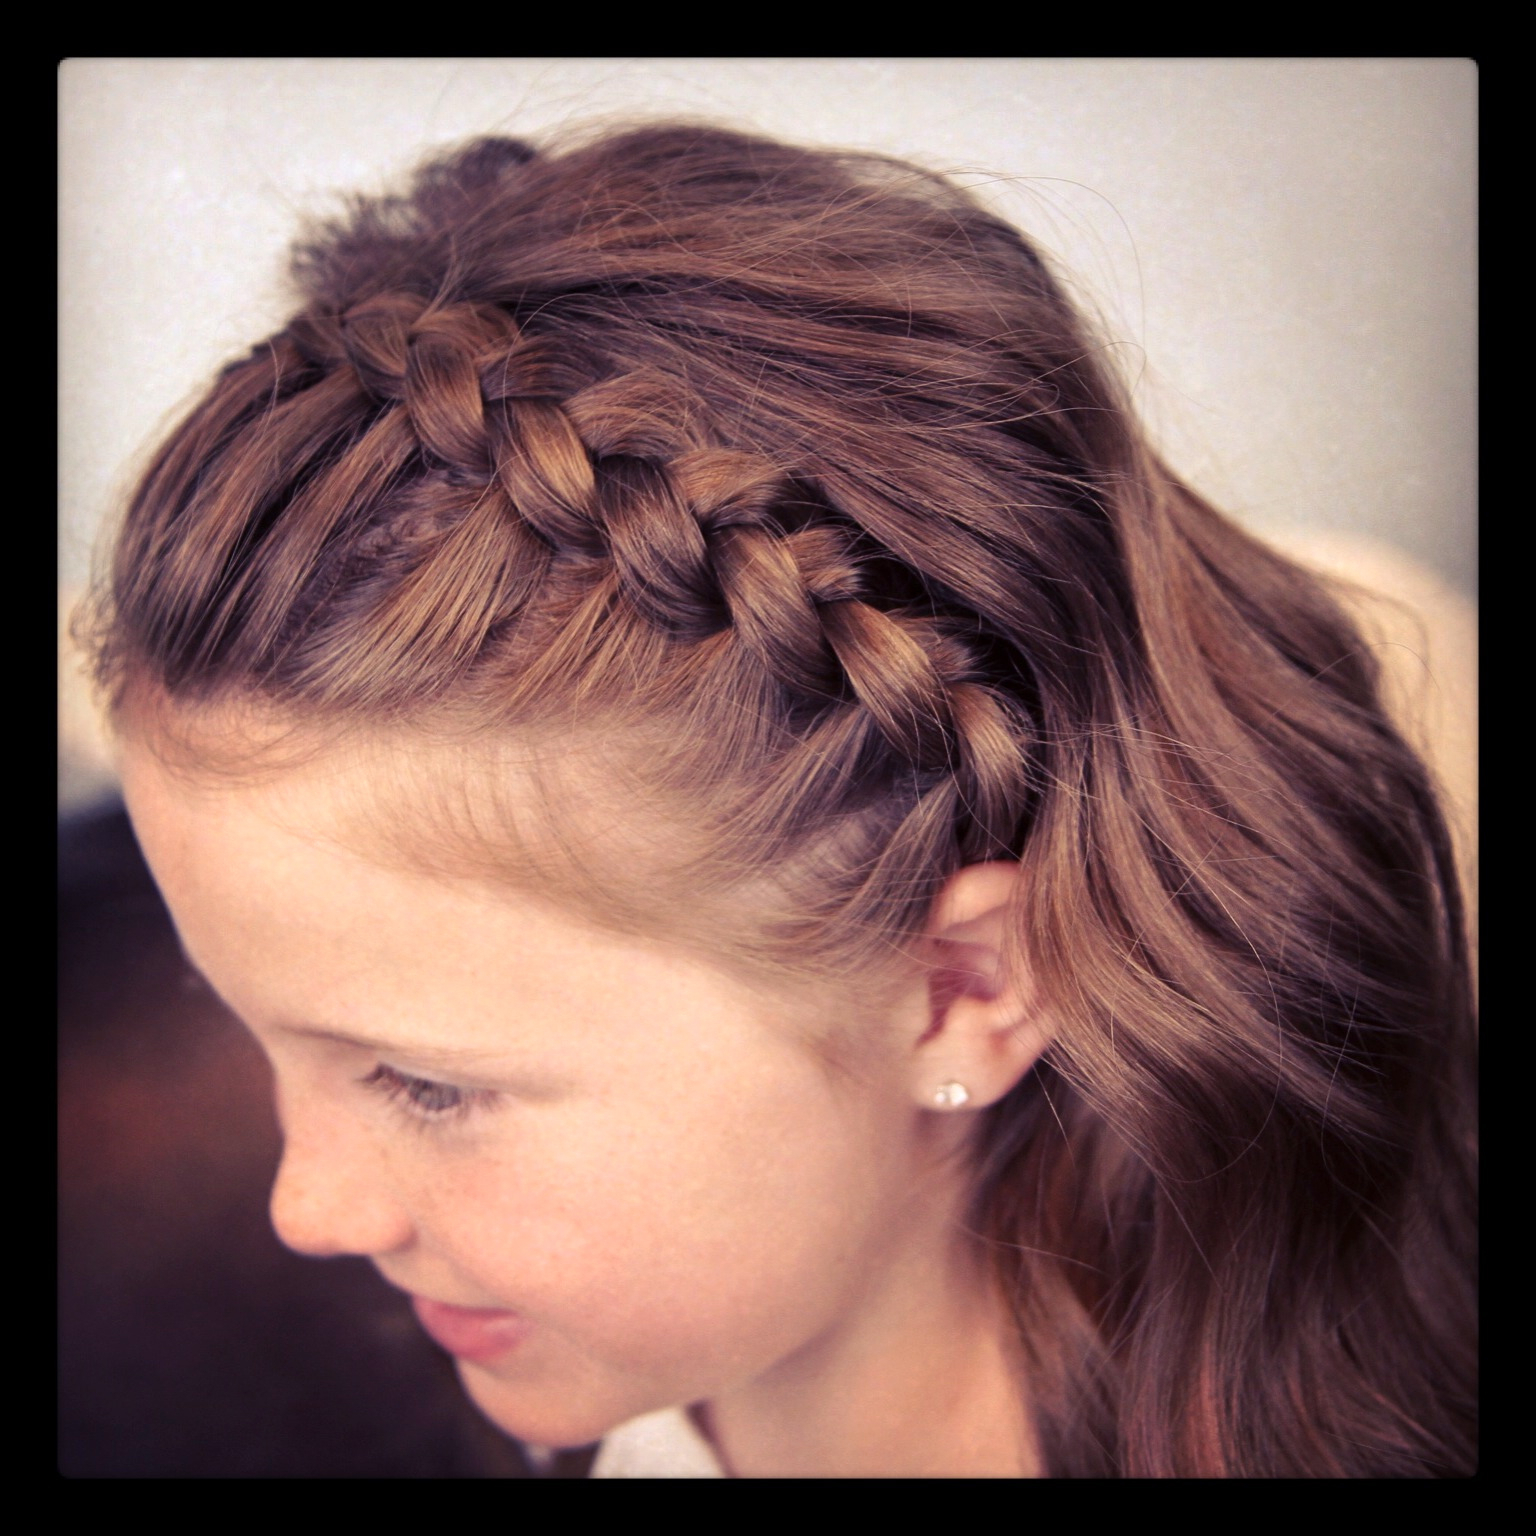 2019 Braided Headband Hairstyles For Curly Hair For Dutch Lace Braided Headband (View 18 of 20)